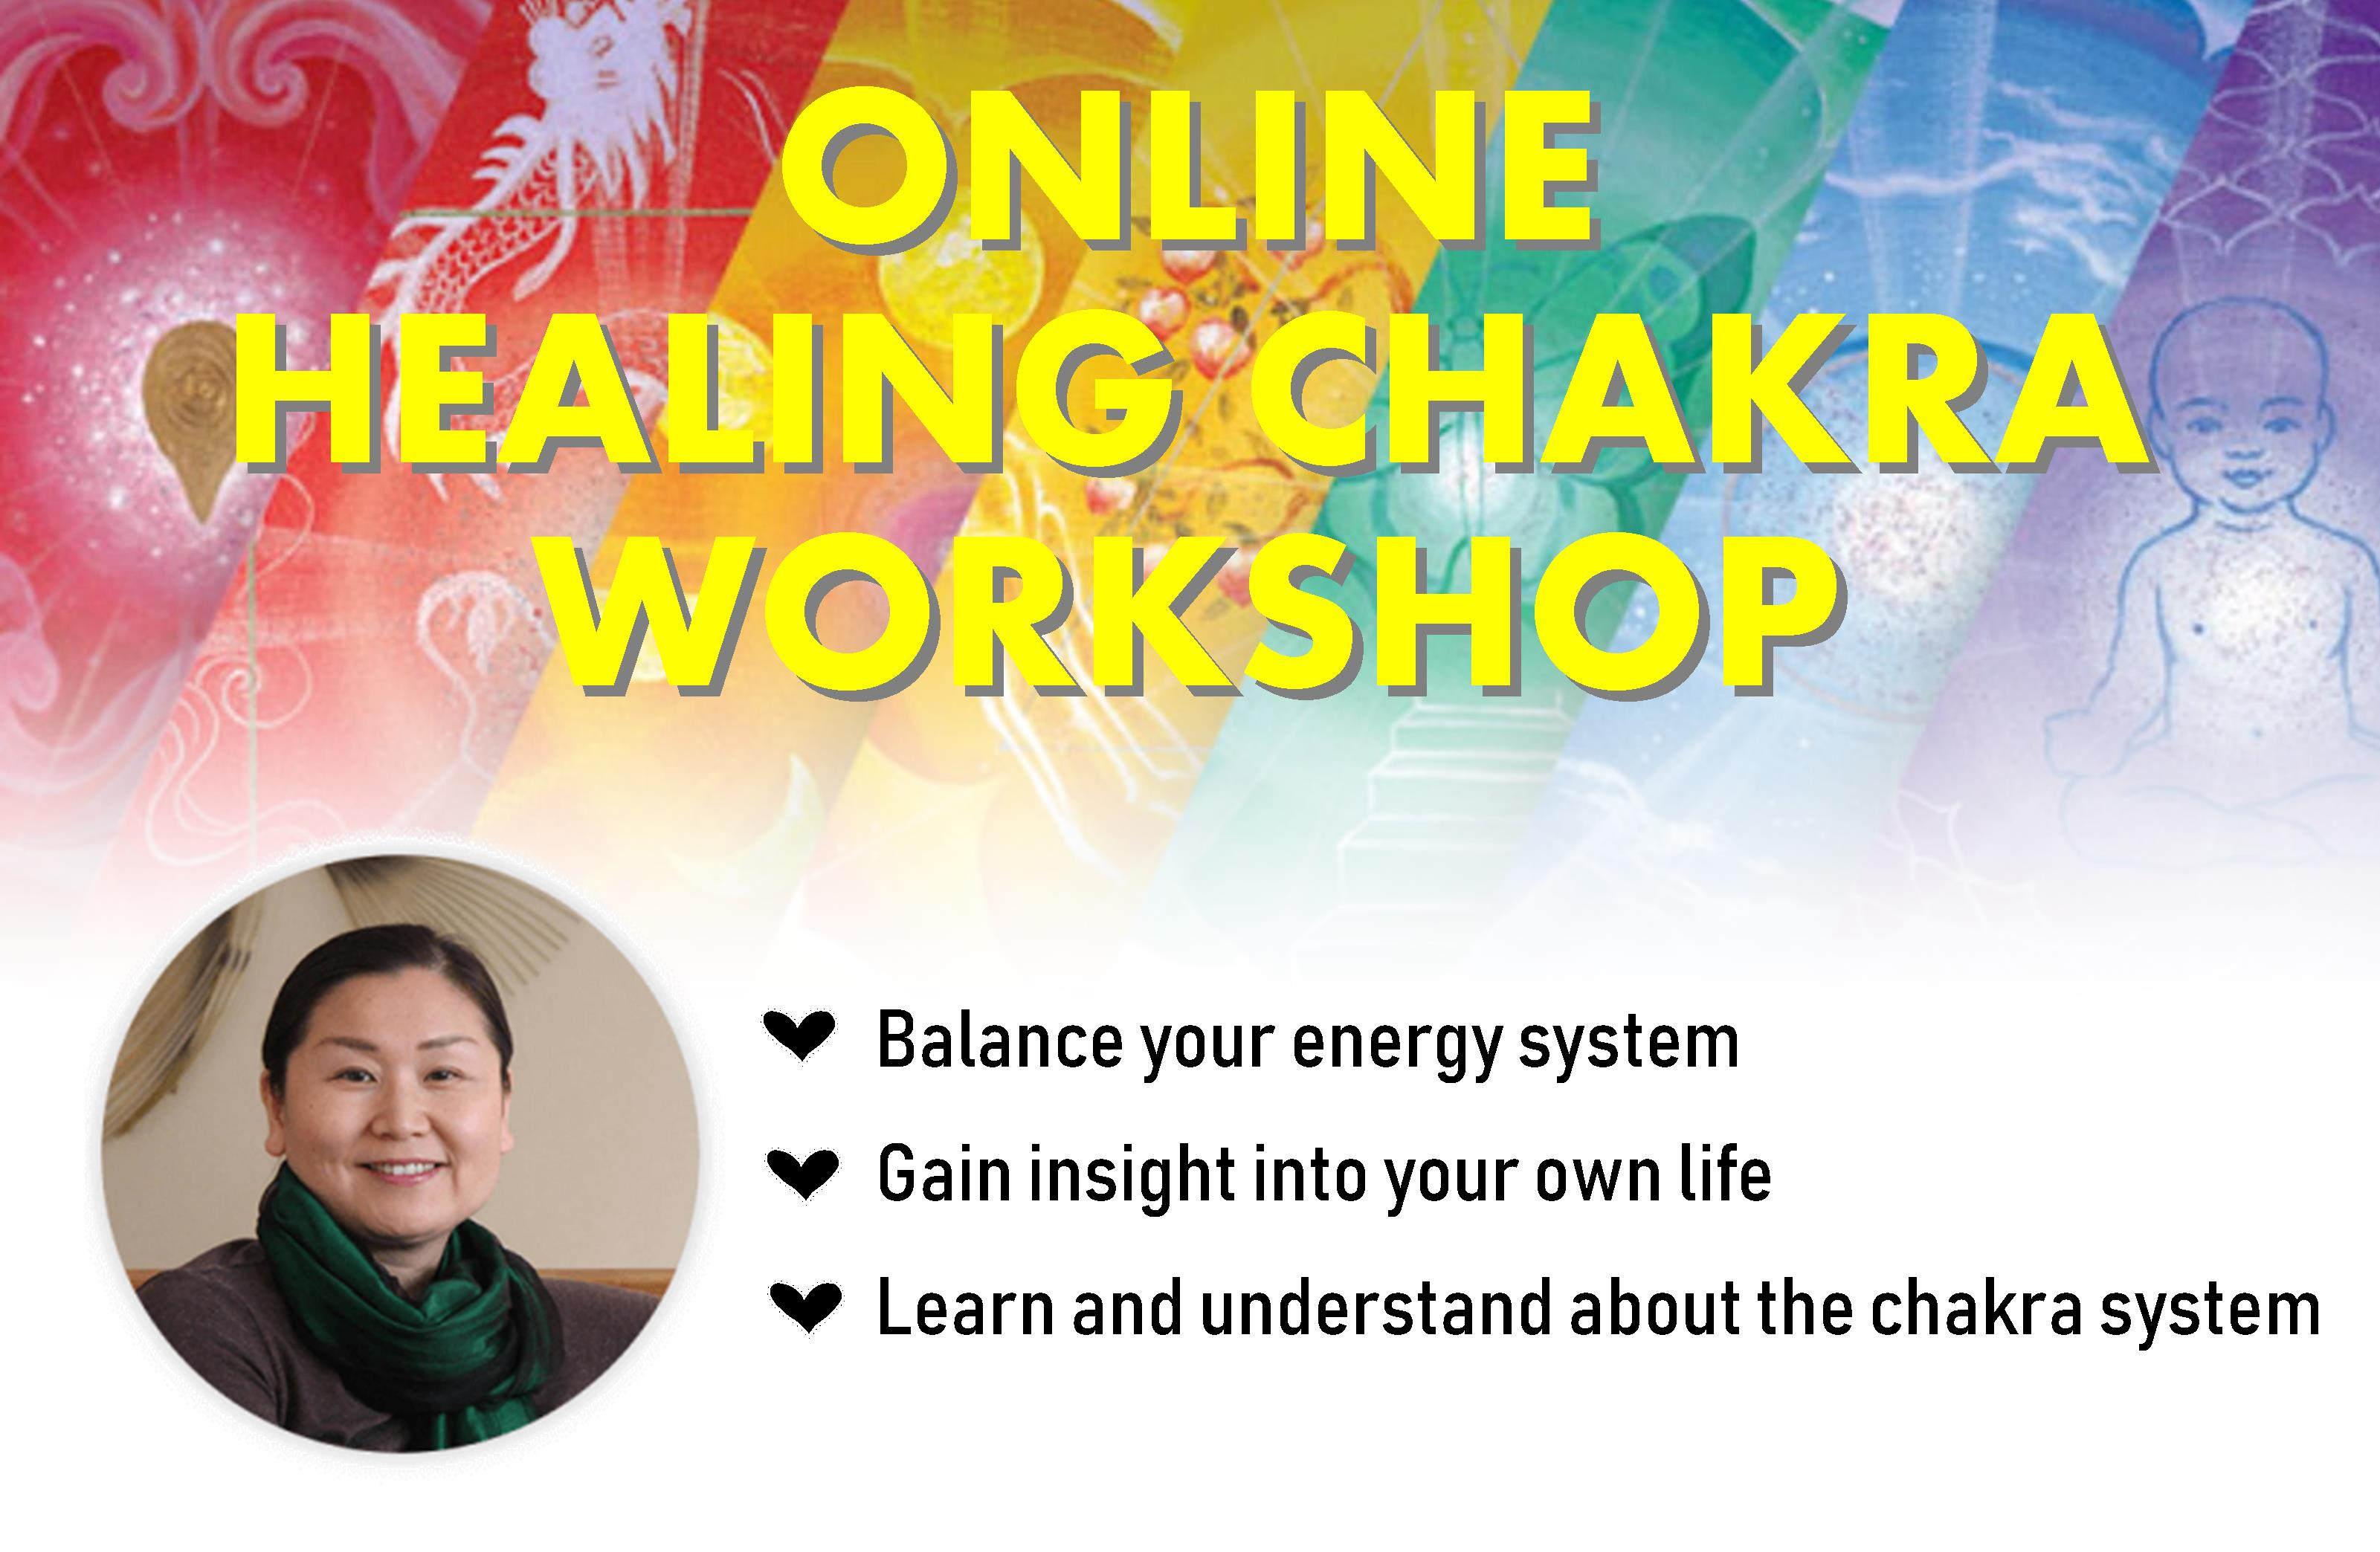 Online Healing Chakra Workshop April 18th